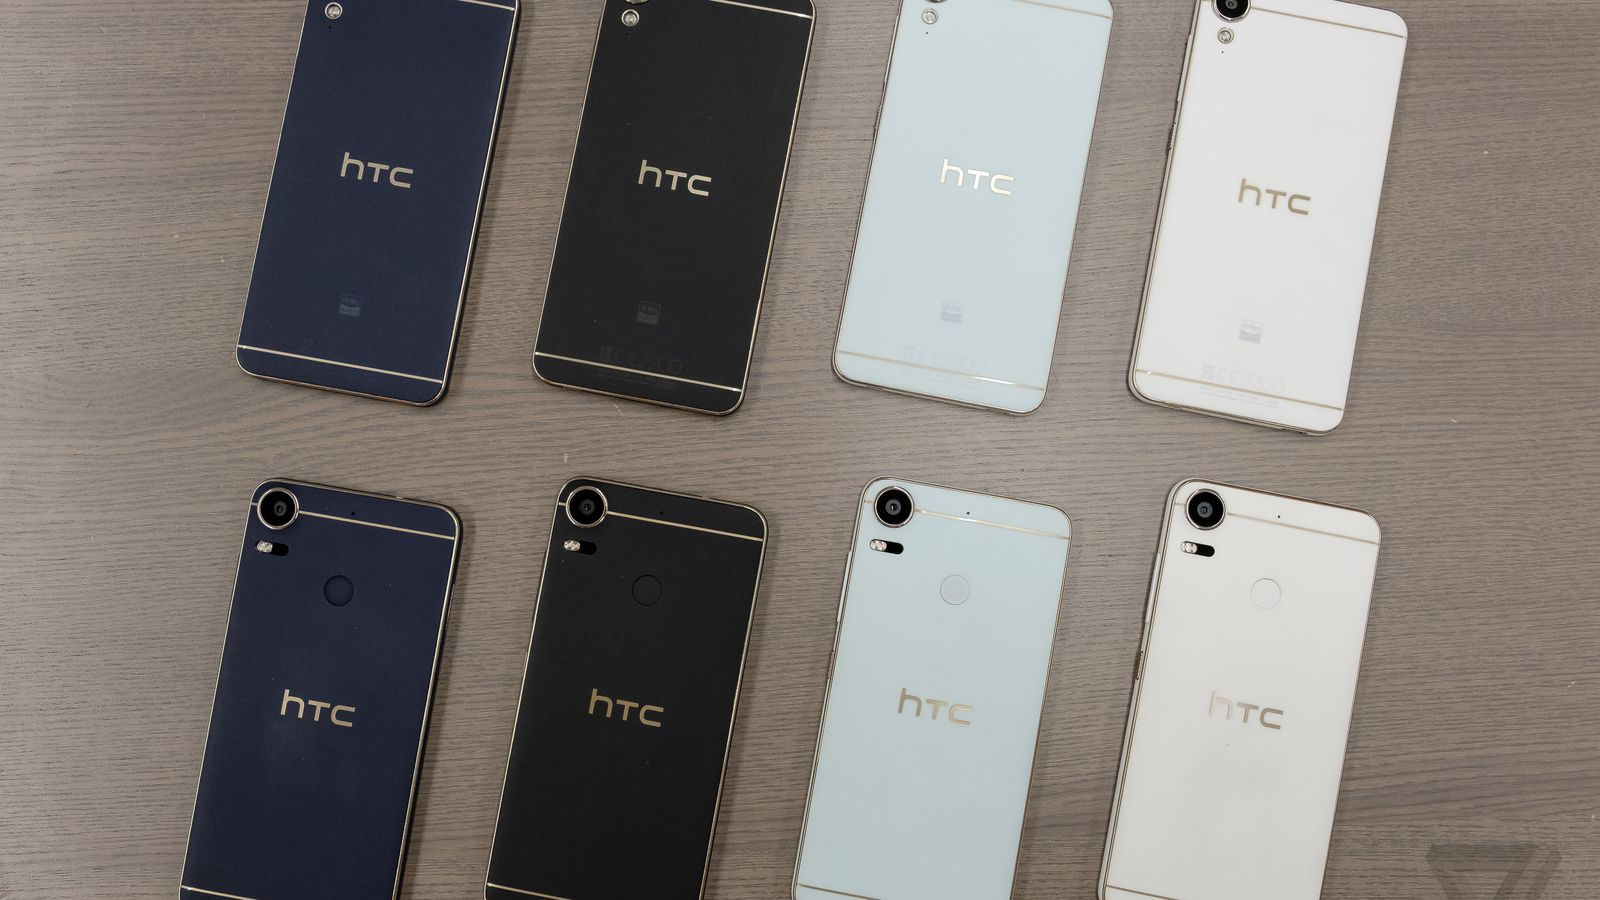 htc 39 s desire 10 is a budget phone in a fancy suit the verge. Black Bedroom Furniture Sets. Home Design Ideas